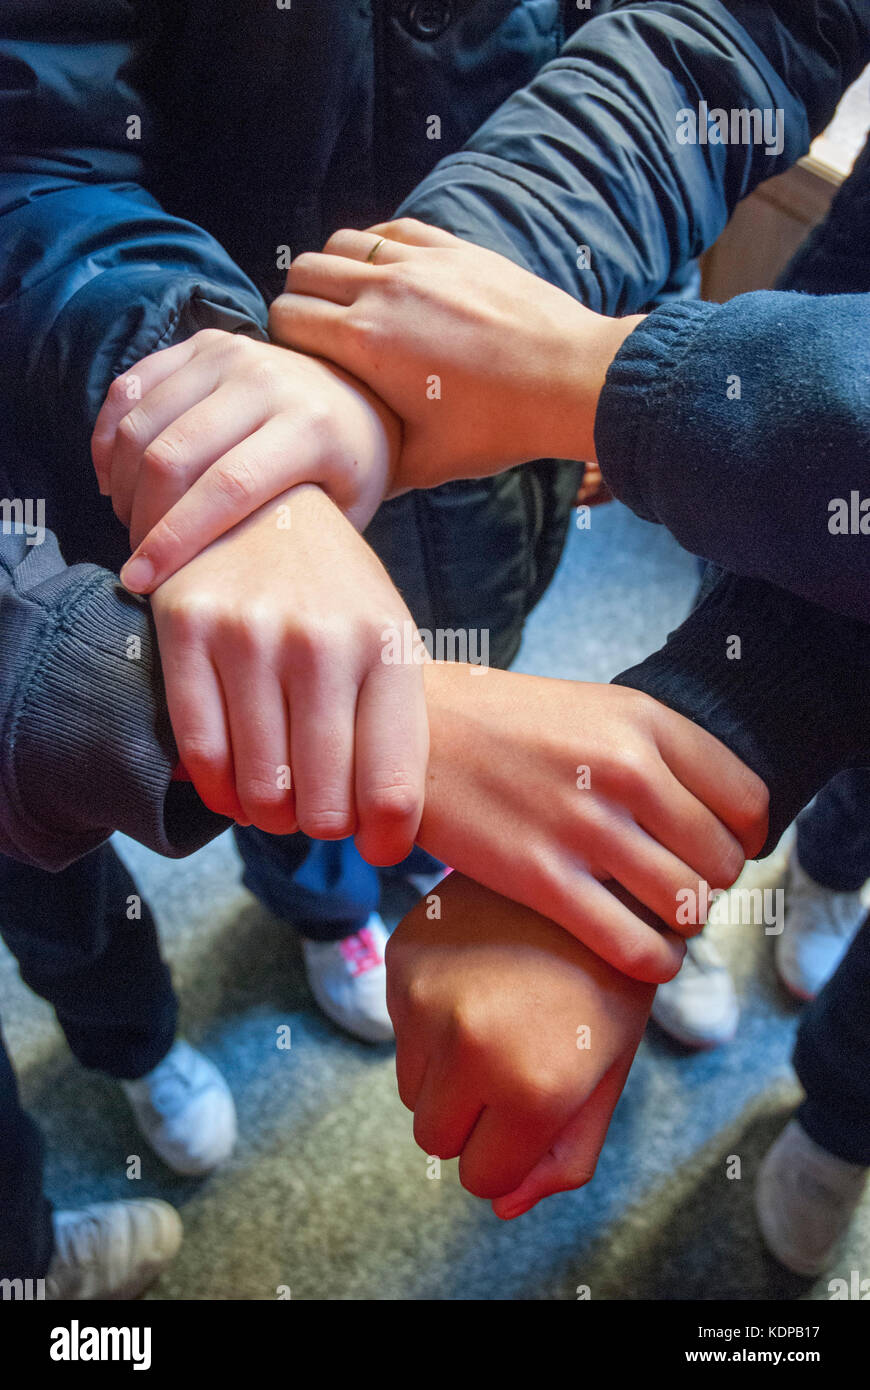 Boys hands expressing union. - Stock Image